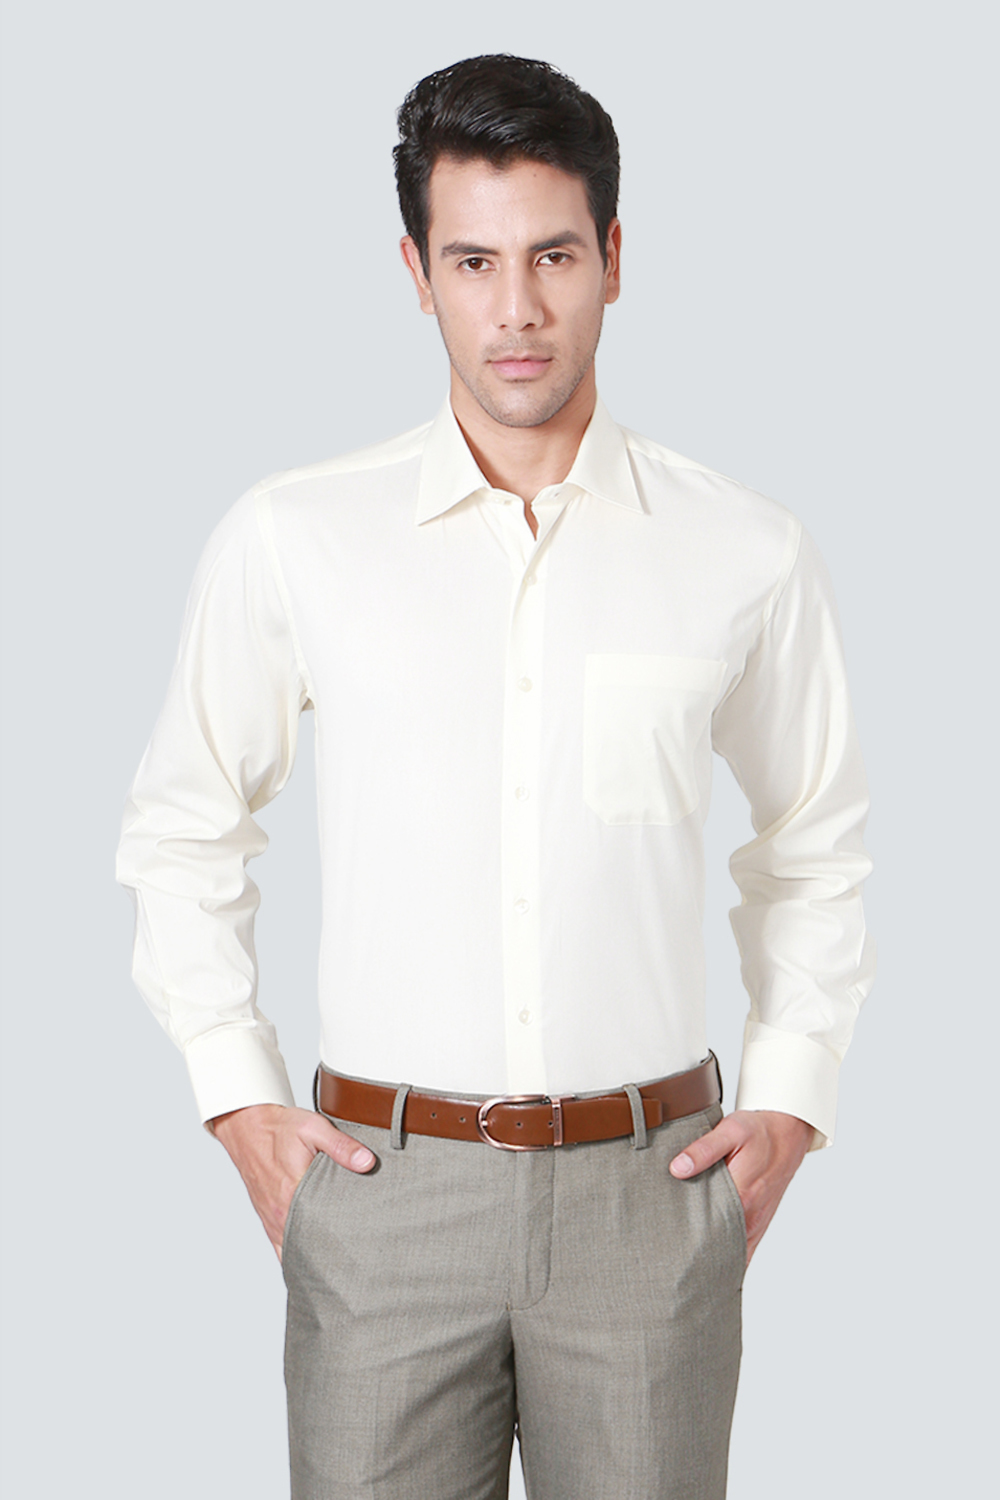 352886bcb3 Louis Philippe Shirts, Louis Philippe Cream Shirt for Men at Louisphilippe .com